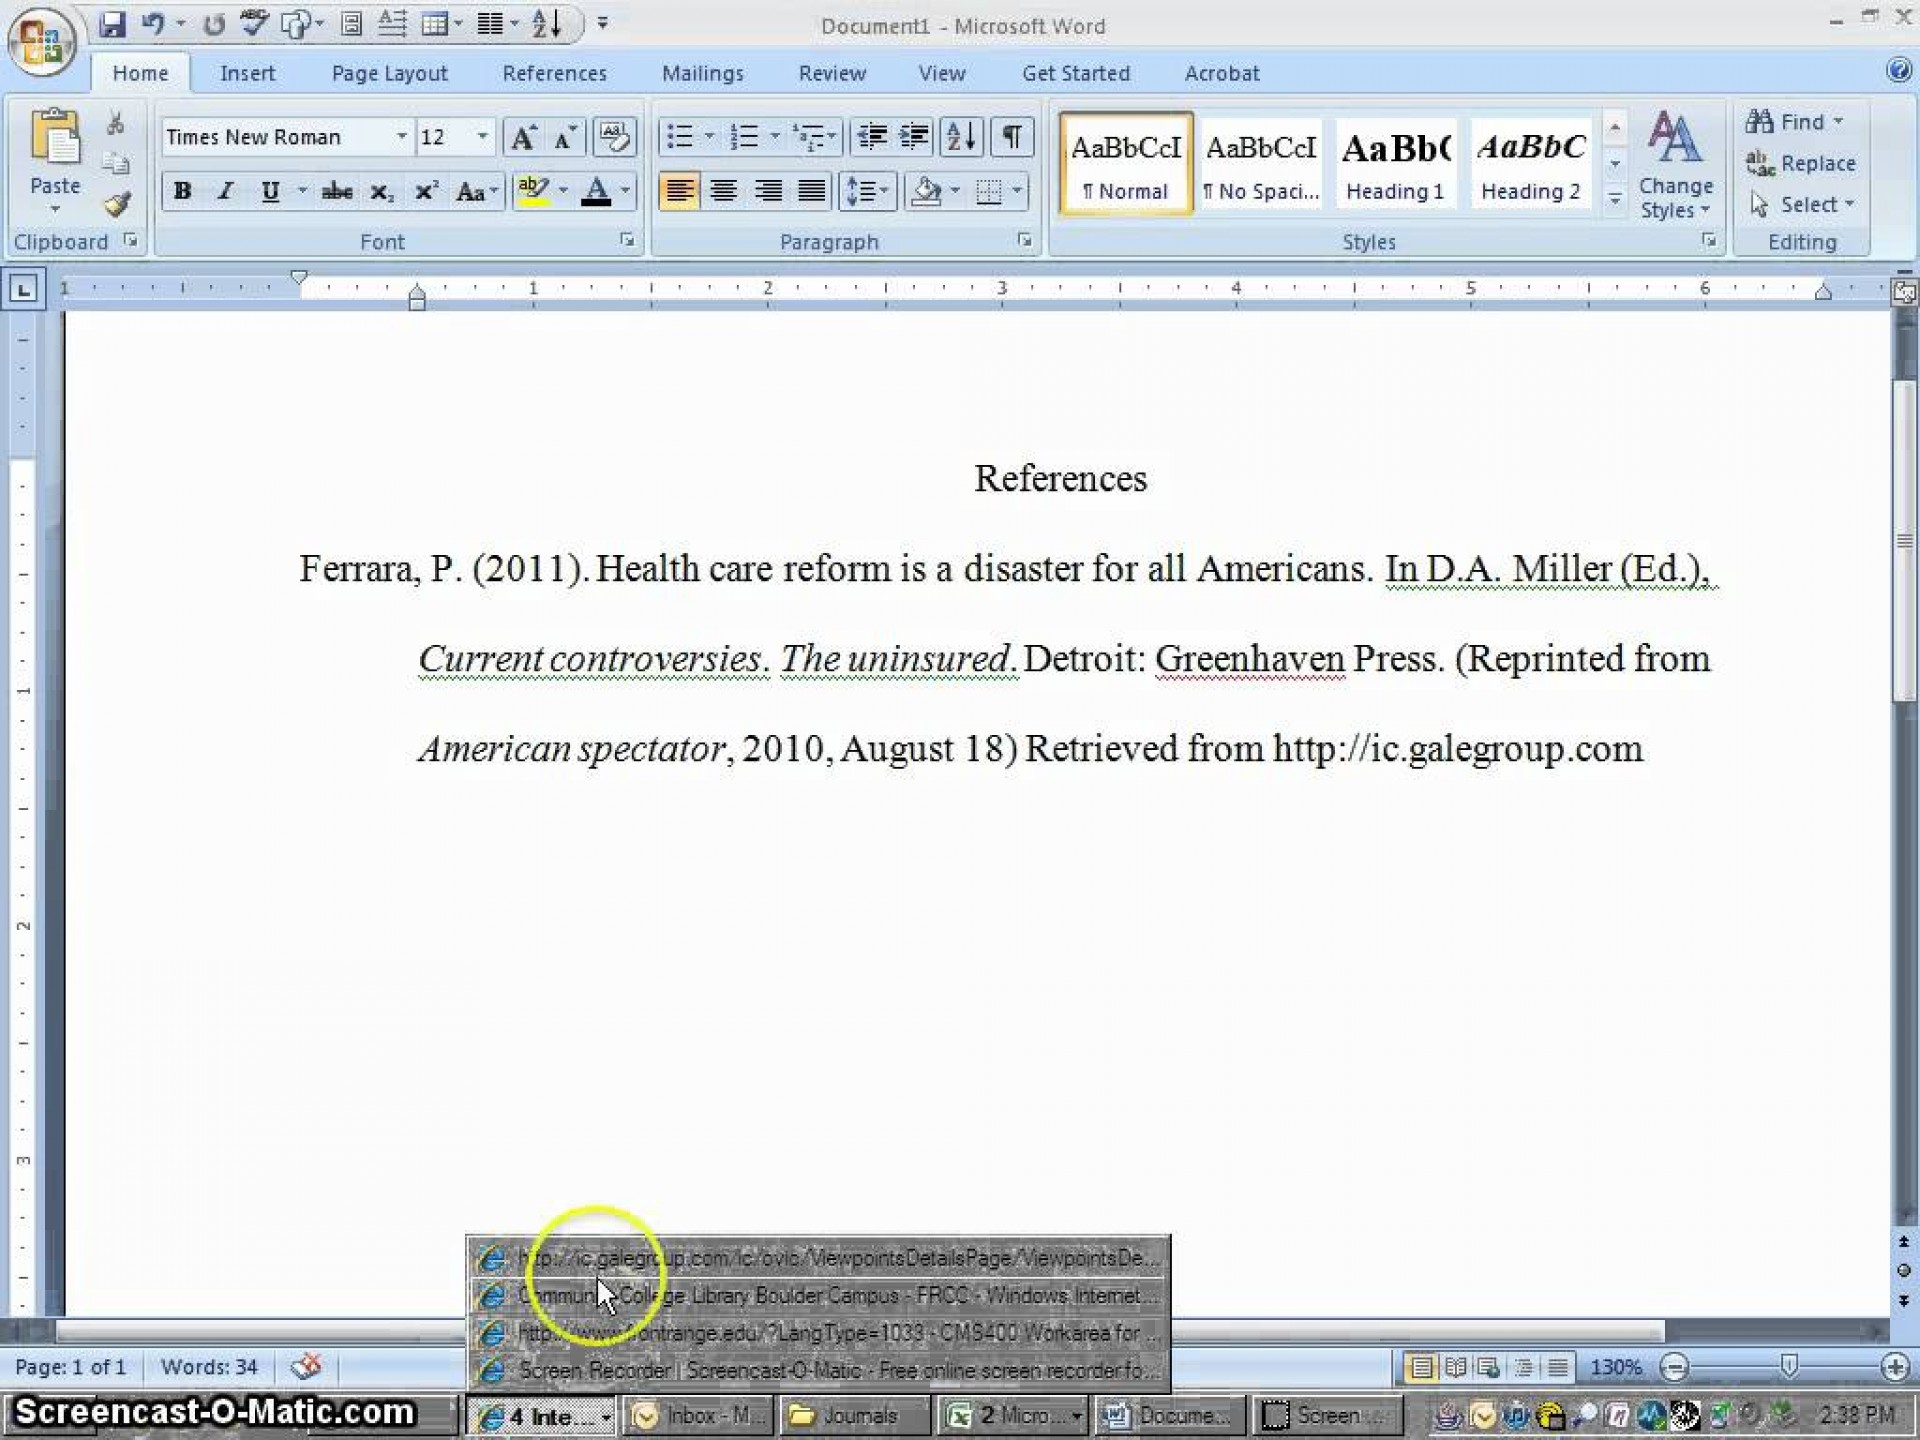 014 Best Solutions Of Free Apa Maker Insrenterprises For Your Cite In Format Generator Research Top Paper Harvard Referencing How To My Sources Mla 1920